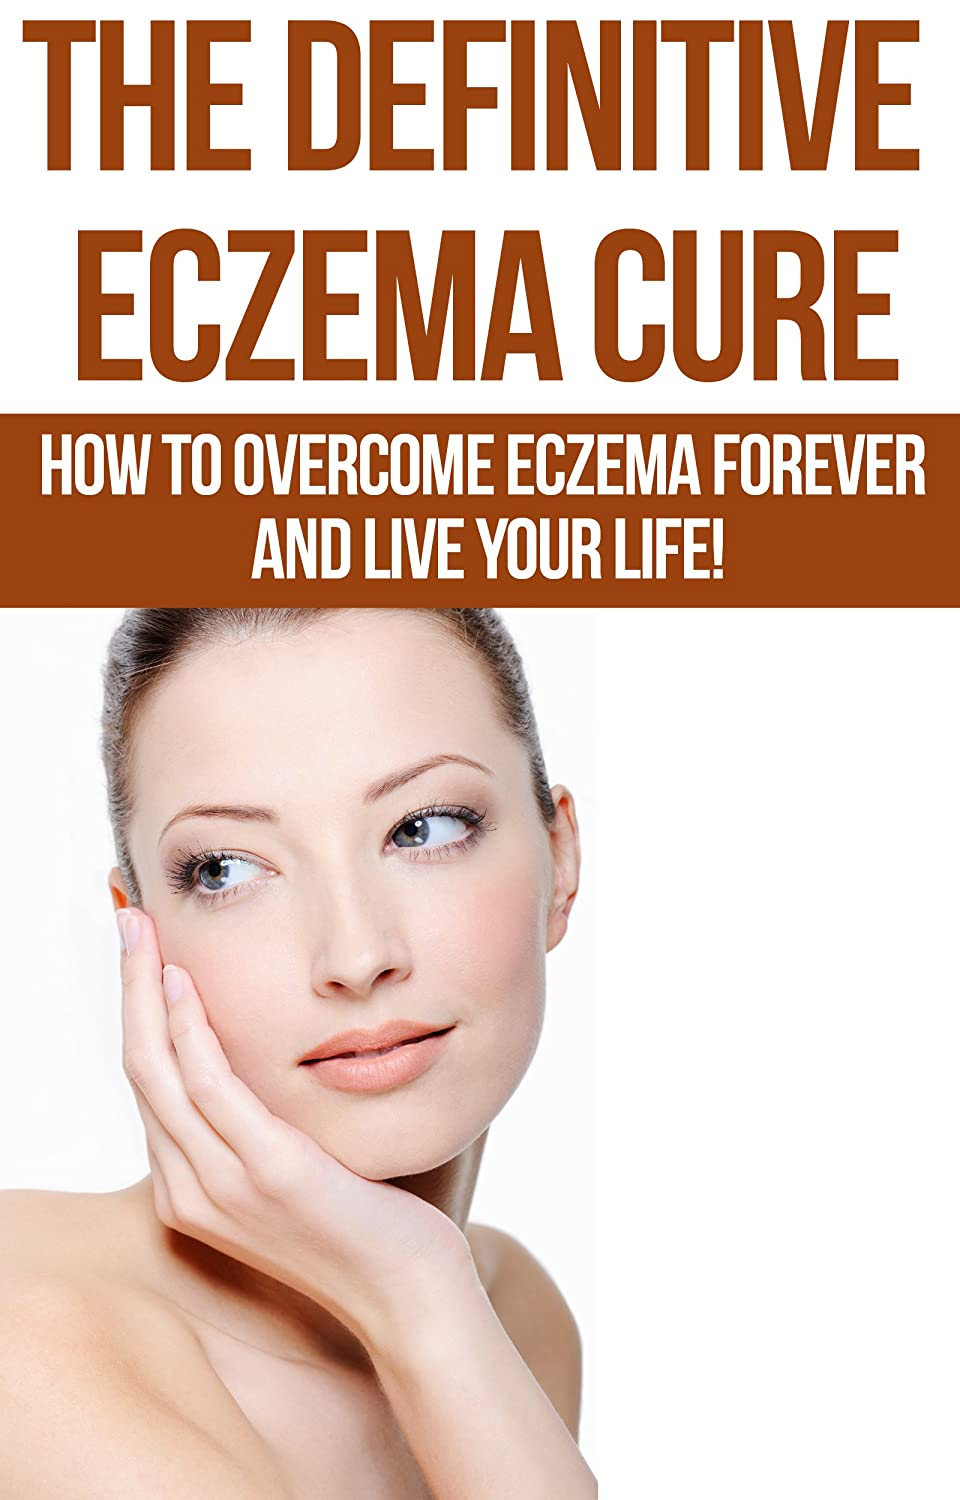 Eczema: The Definitive Eczema Cure - How To Overcome Eczema